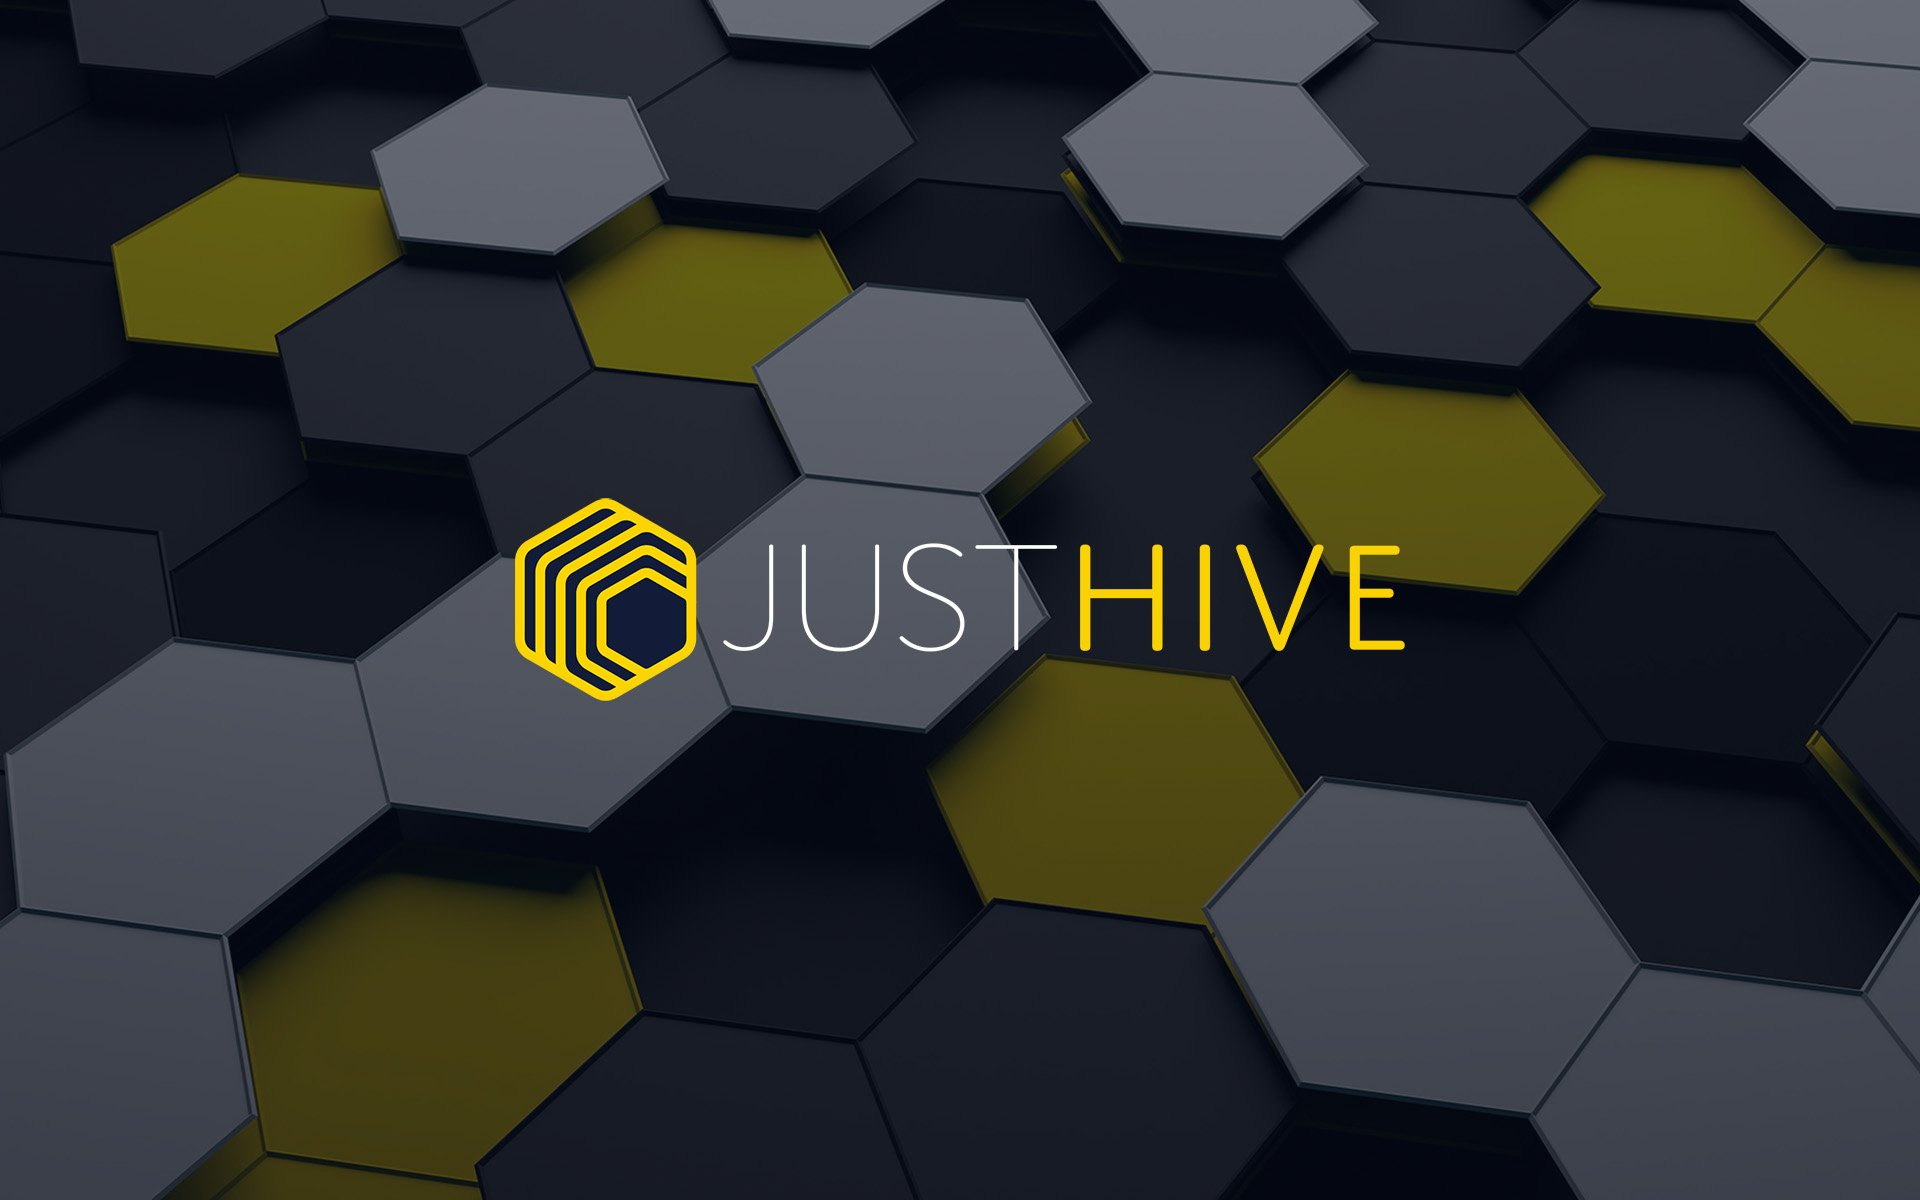 JustHive Launces ICO Pre-Sale Backed By New Digital Currency That Empowers Content Creators By Finally Providing Them With Just Compensation